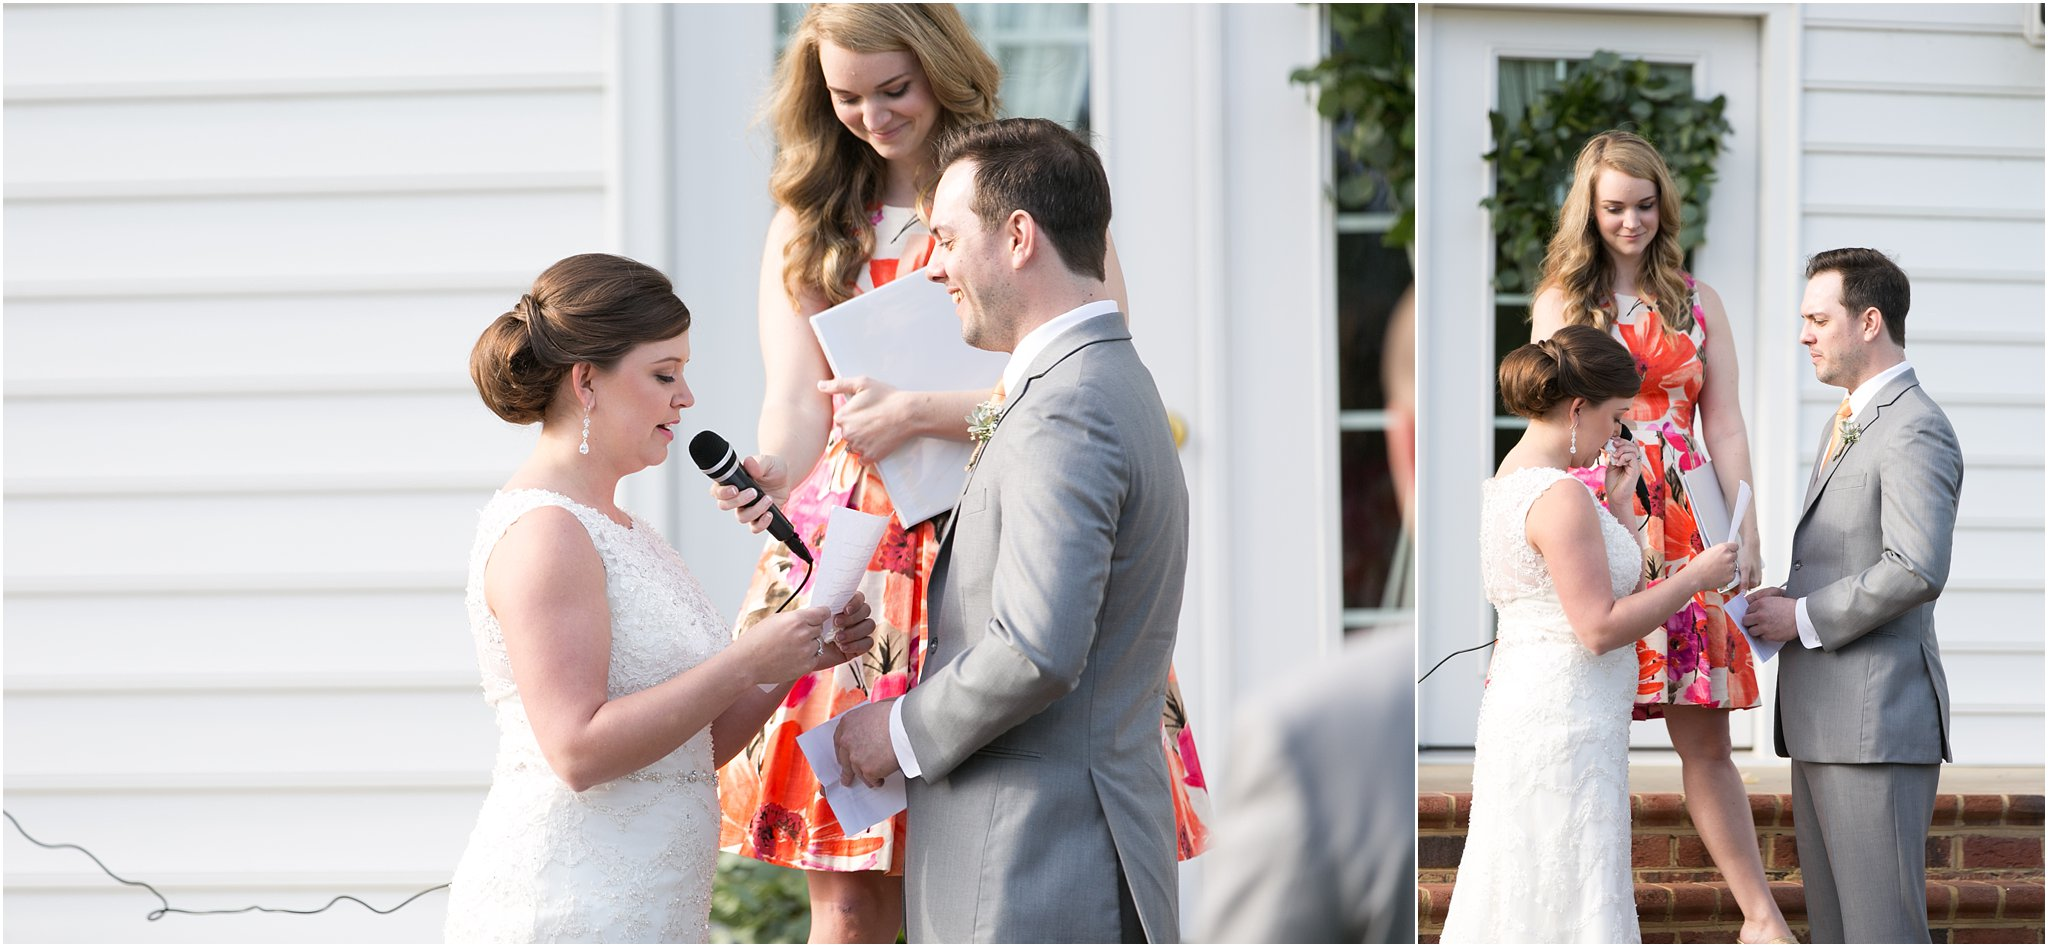 jessica_ryan_photography_holly_ridge_manor_wedding_roost_flowers_jamie_leigh_events_dhalia_edwards_candid_vibrant_wedding_colors_1297